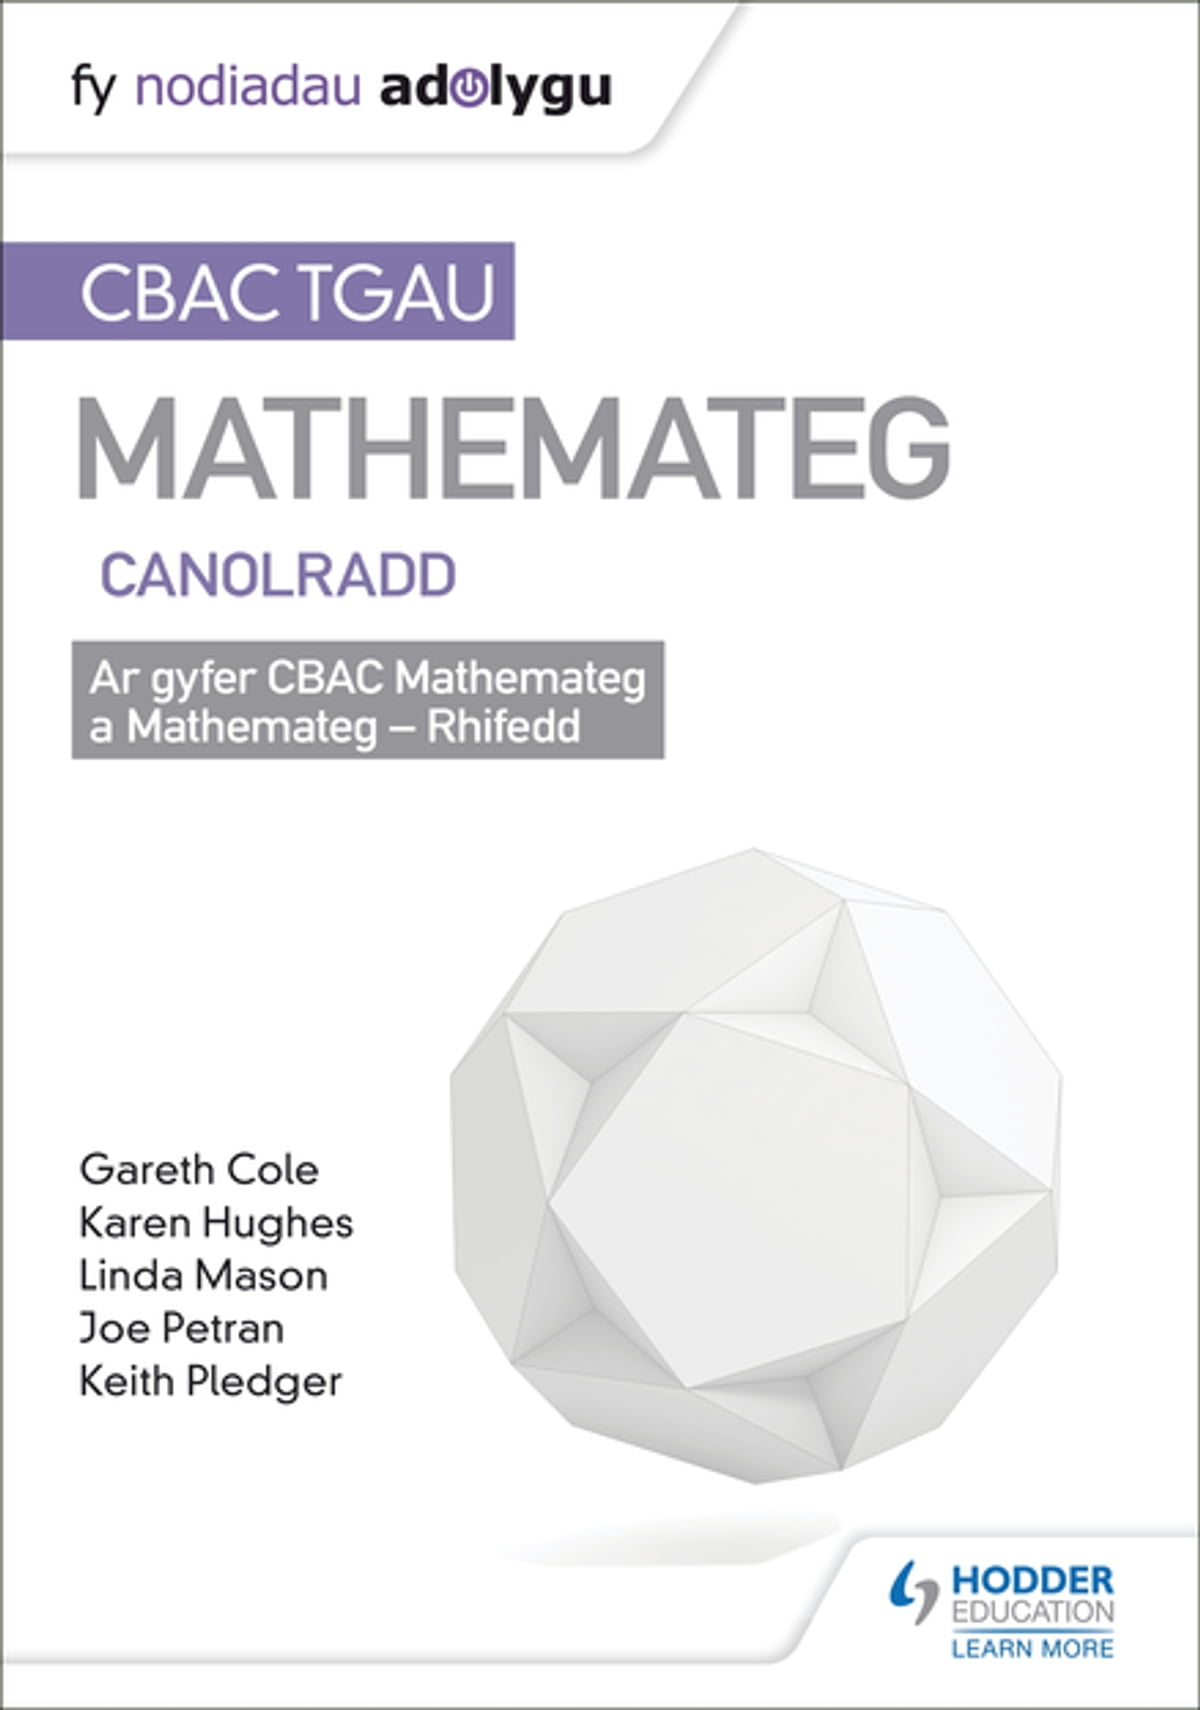 Wjec gcse maths intermediate revision guide ebook by keith pledger wjec gcse maths intermediate revision guide ebook by keith pledger 9781510446724 rakuten kobo fandeluxe Images